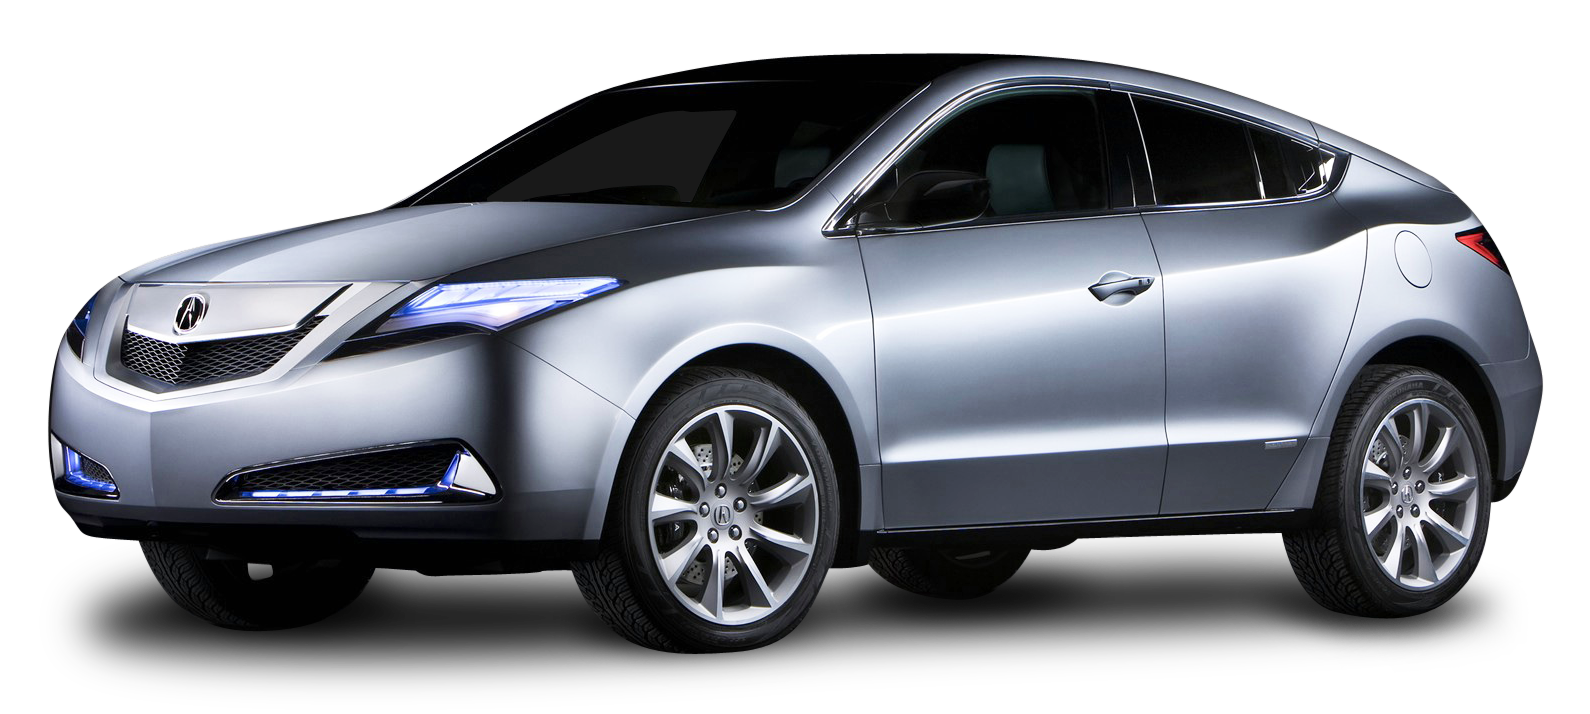 Silver Acura MDX Prototype Car PNG Image - Acura PNG